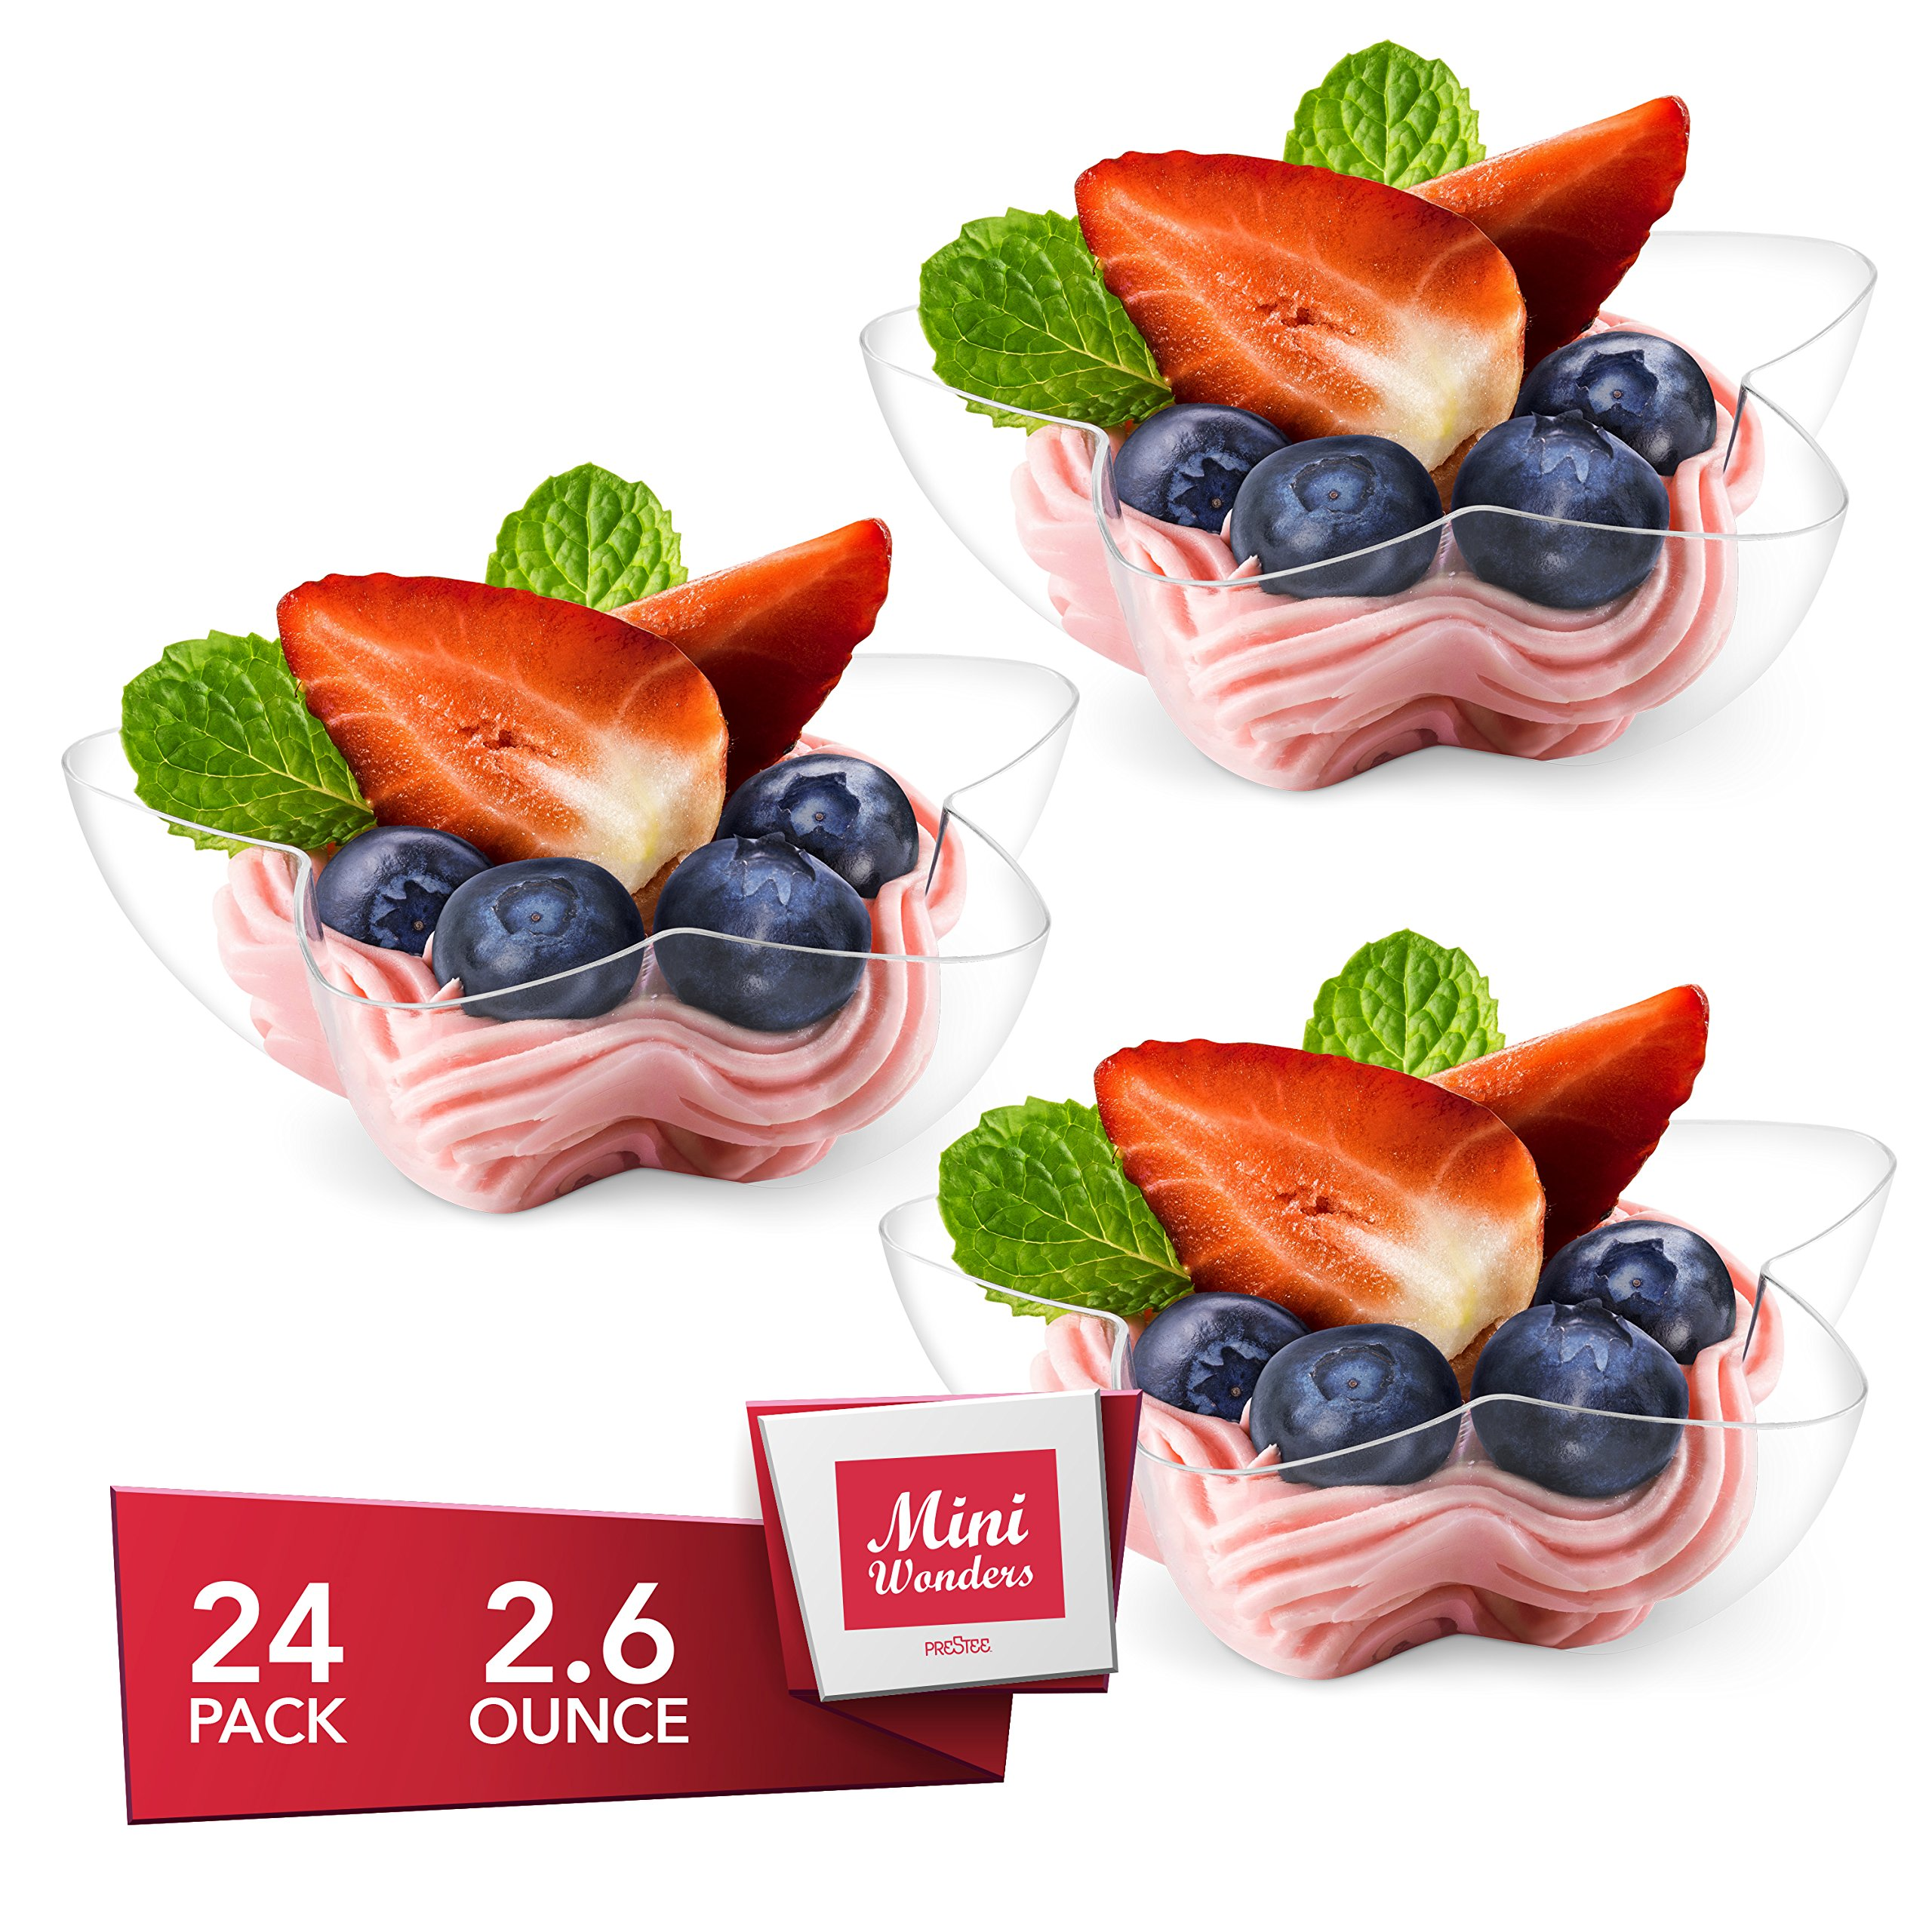 MINI WONDERS Heavy Duty Plastic Single Serve Small Star Bowl 2.6 oz Dessert Cups 24 Count Clear Personal Appetizer Bowls - Disposable Reusable Party Dishes